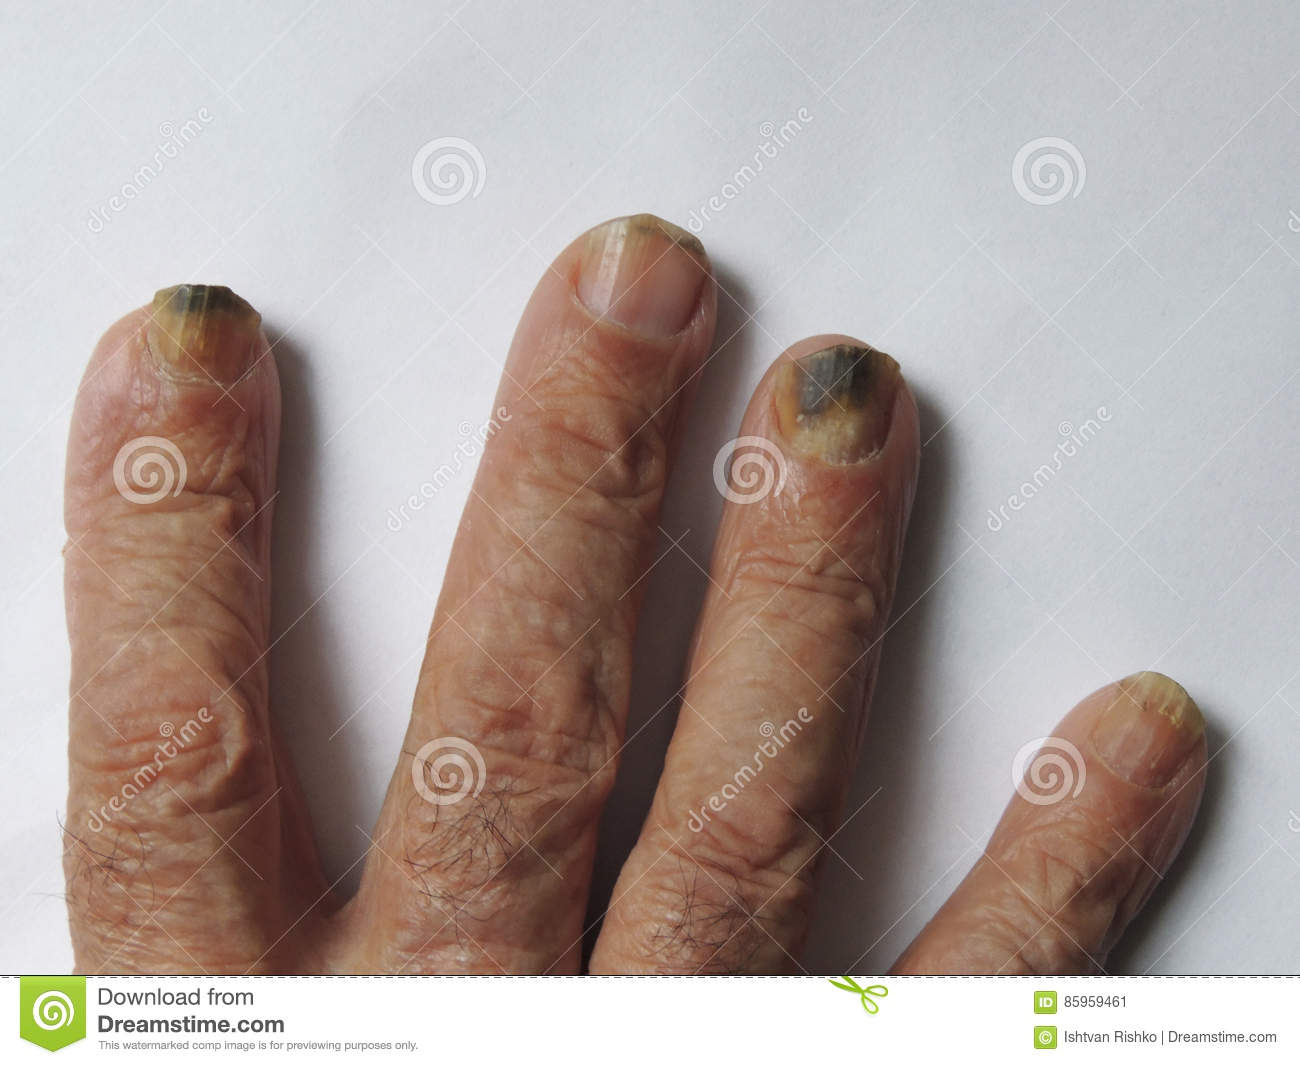 Hand Of A Man With Nail Fungus Stock Image - Image of medicine ...